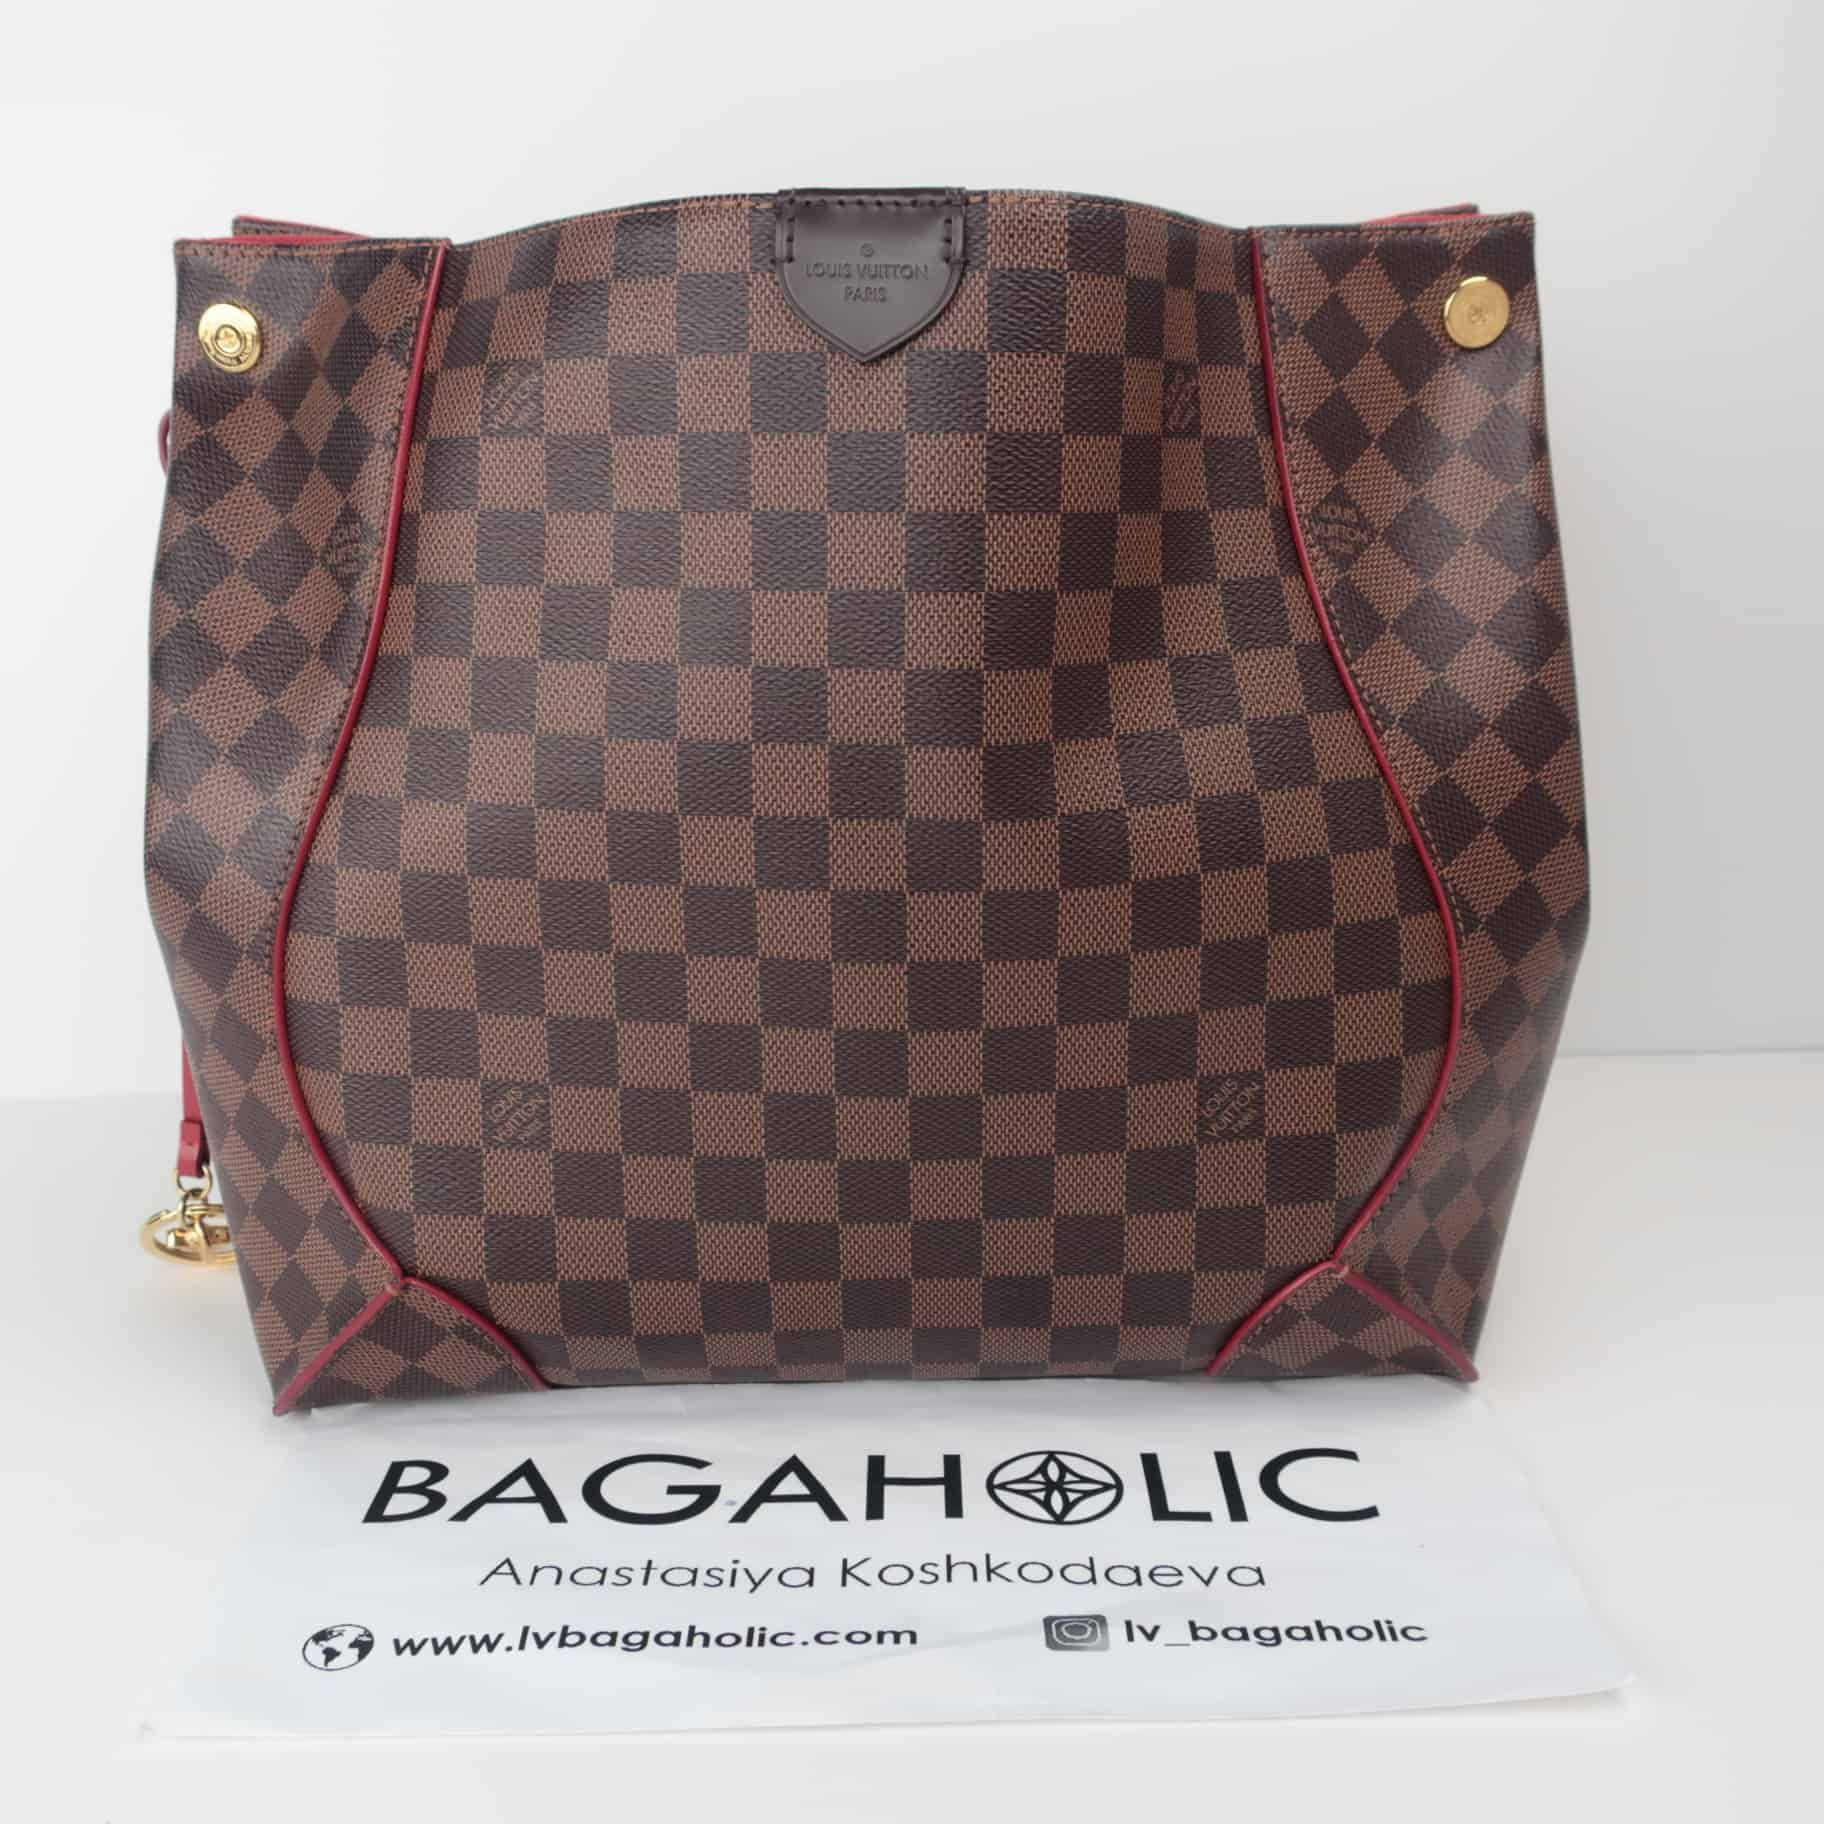 fccc93f8c6d5d Louis Vuitton Caissa Hobo Damier Ebene Red bag | Louis Vuitton ...